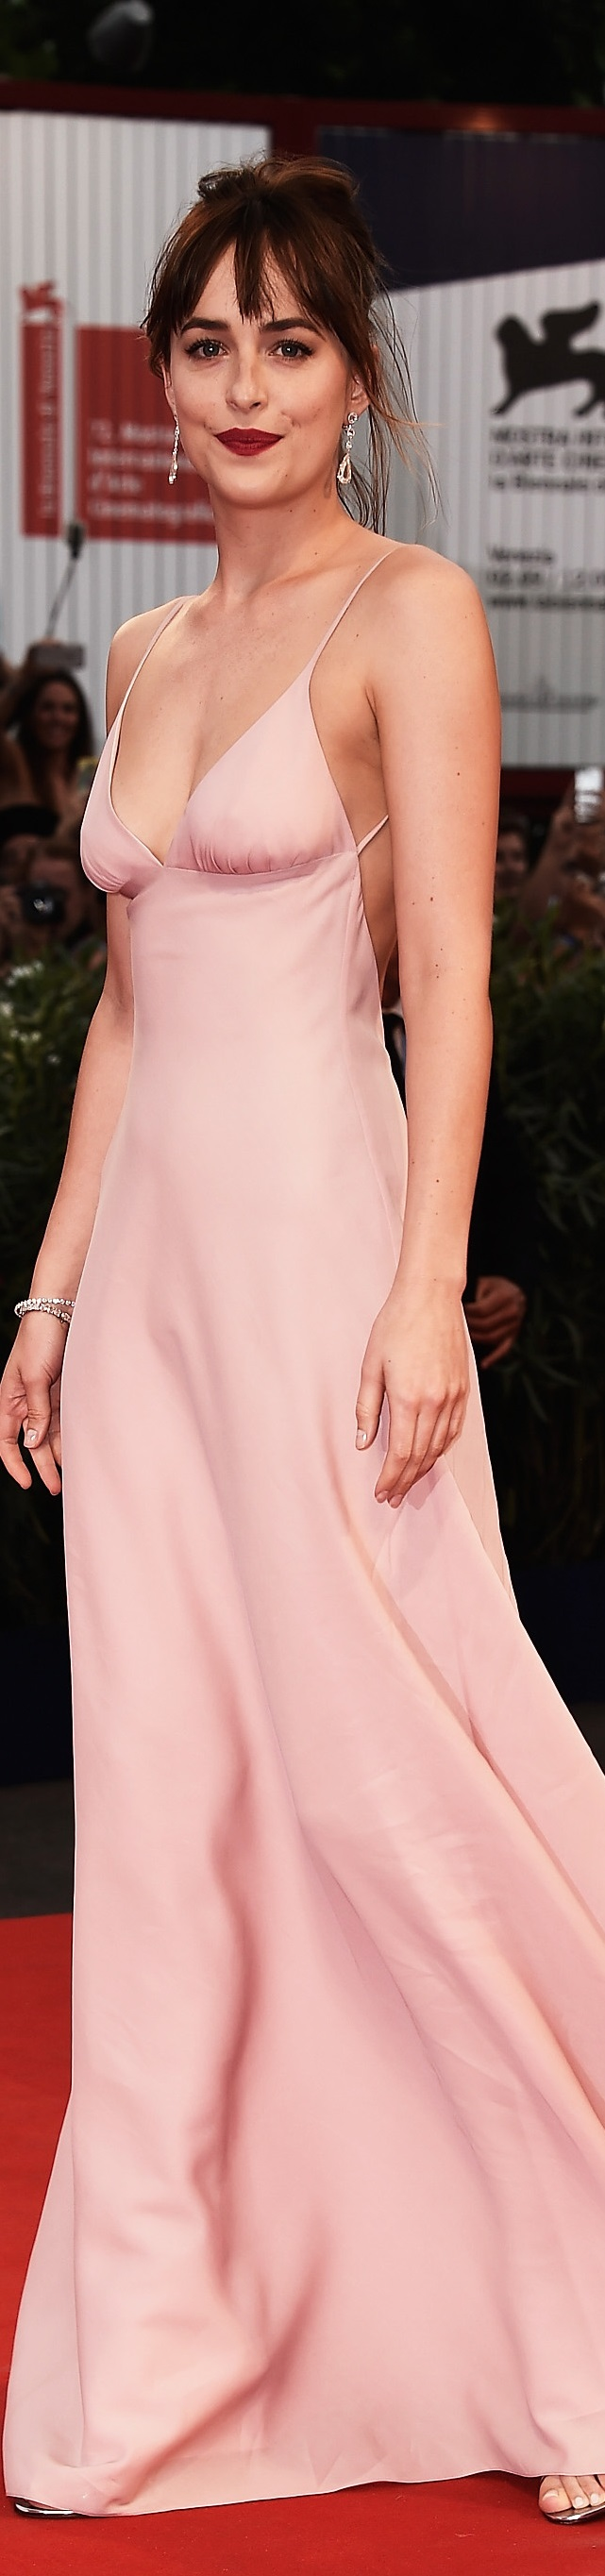 Dakota Johnson - Prada Venice Film Festival 2015 | Celebrity style ...